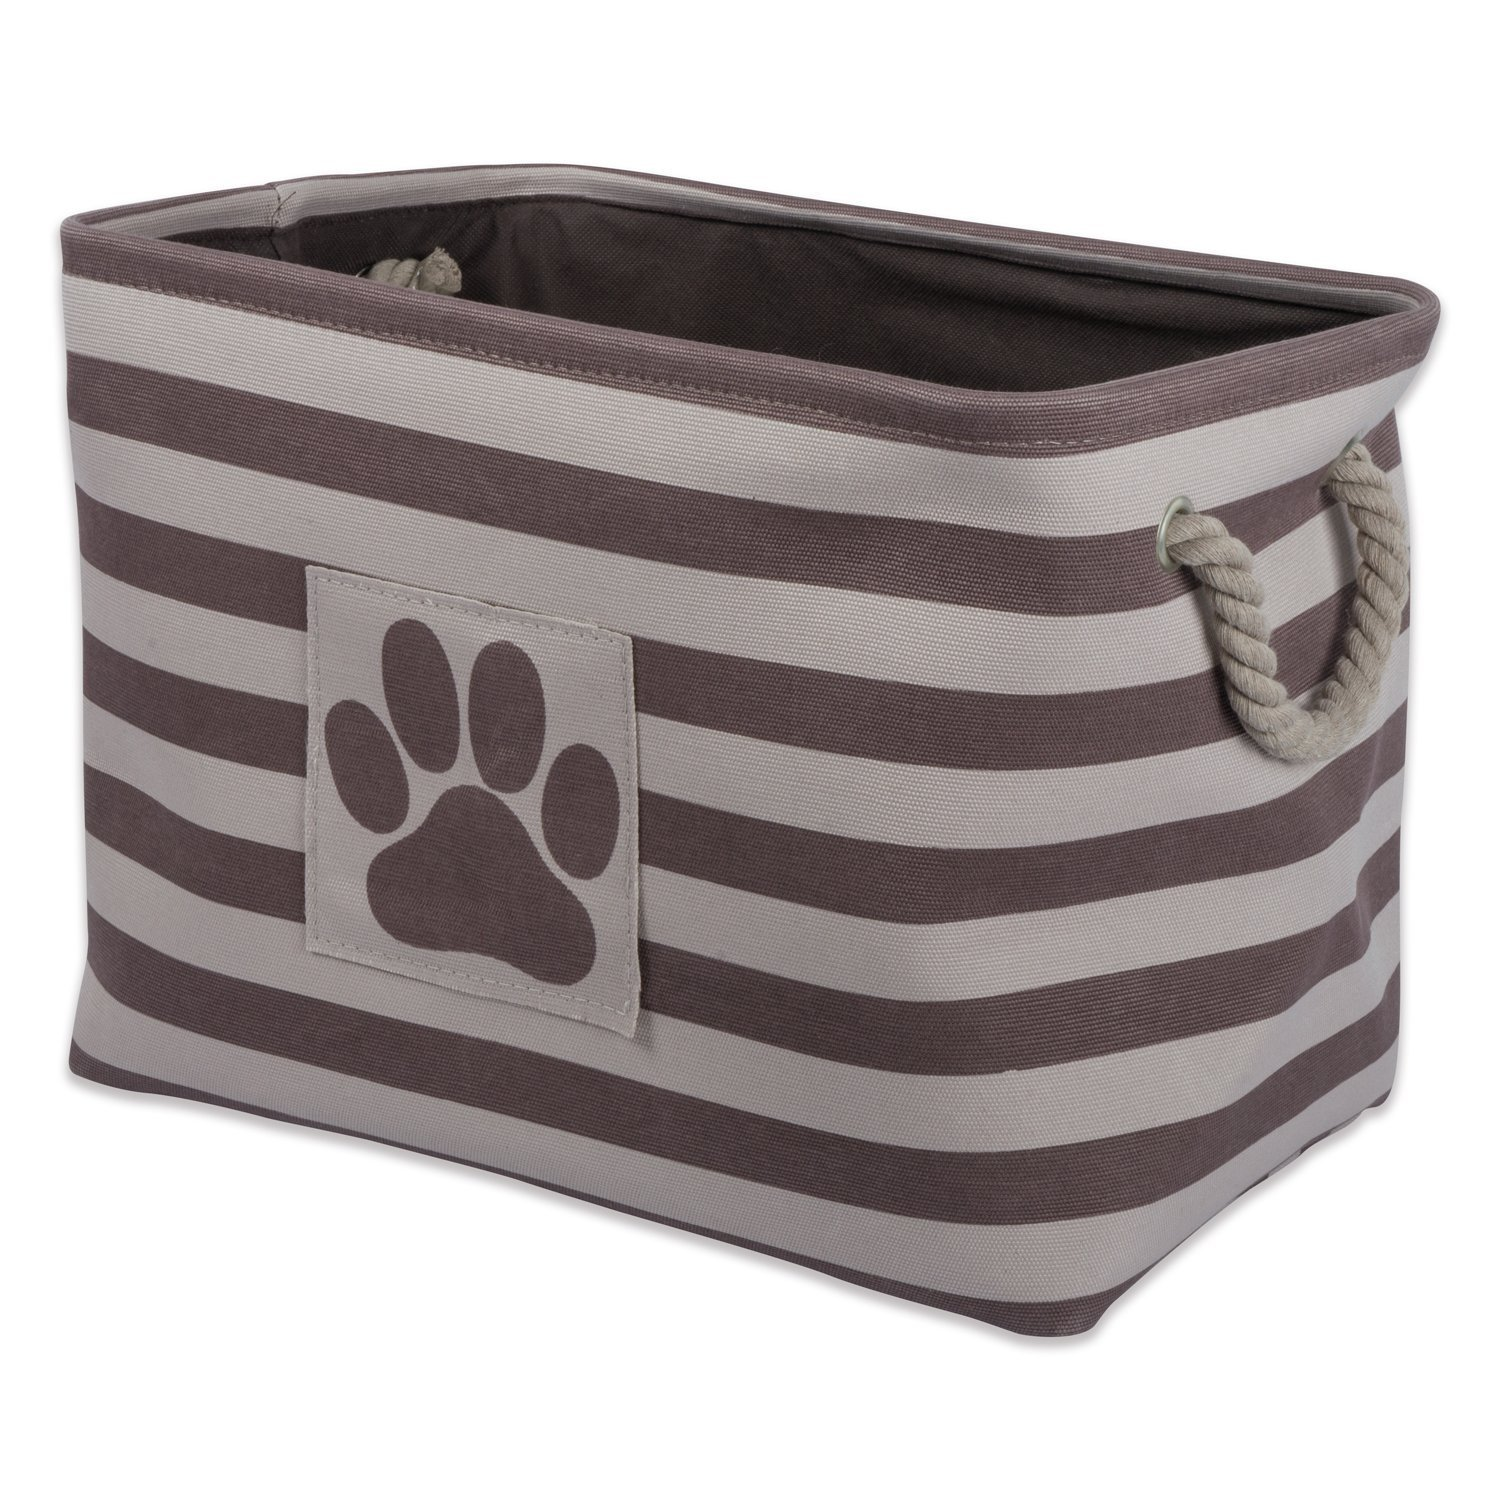 Bone Dry DII Small Rectangle Pet Toy and Accessory Storage Bin, 14x8x9, Collapsible Organizer Storage Basket for Home Décor, Pet Toy, Blankets, Leashes and Food-Brown Stripes